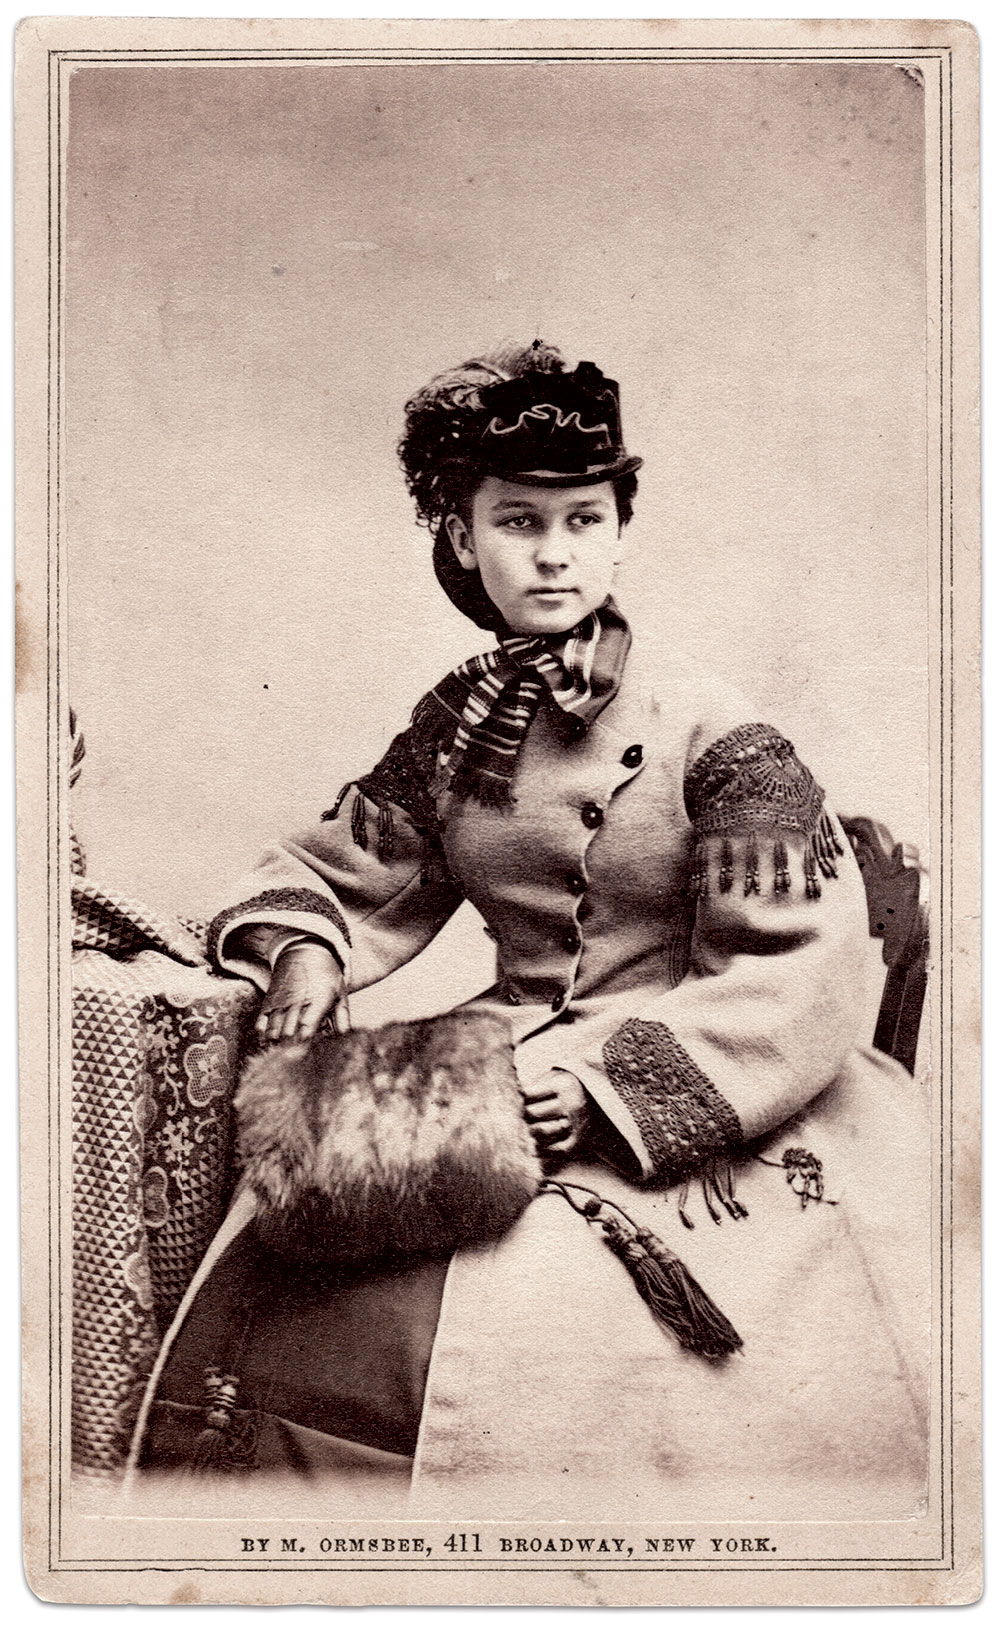 Evans. Carte de visite by Marcus Ormsbee of New York City. Author's collection.